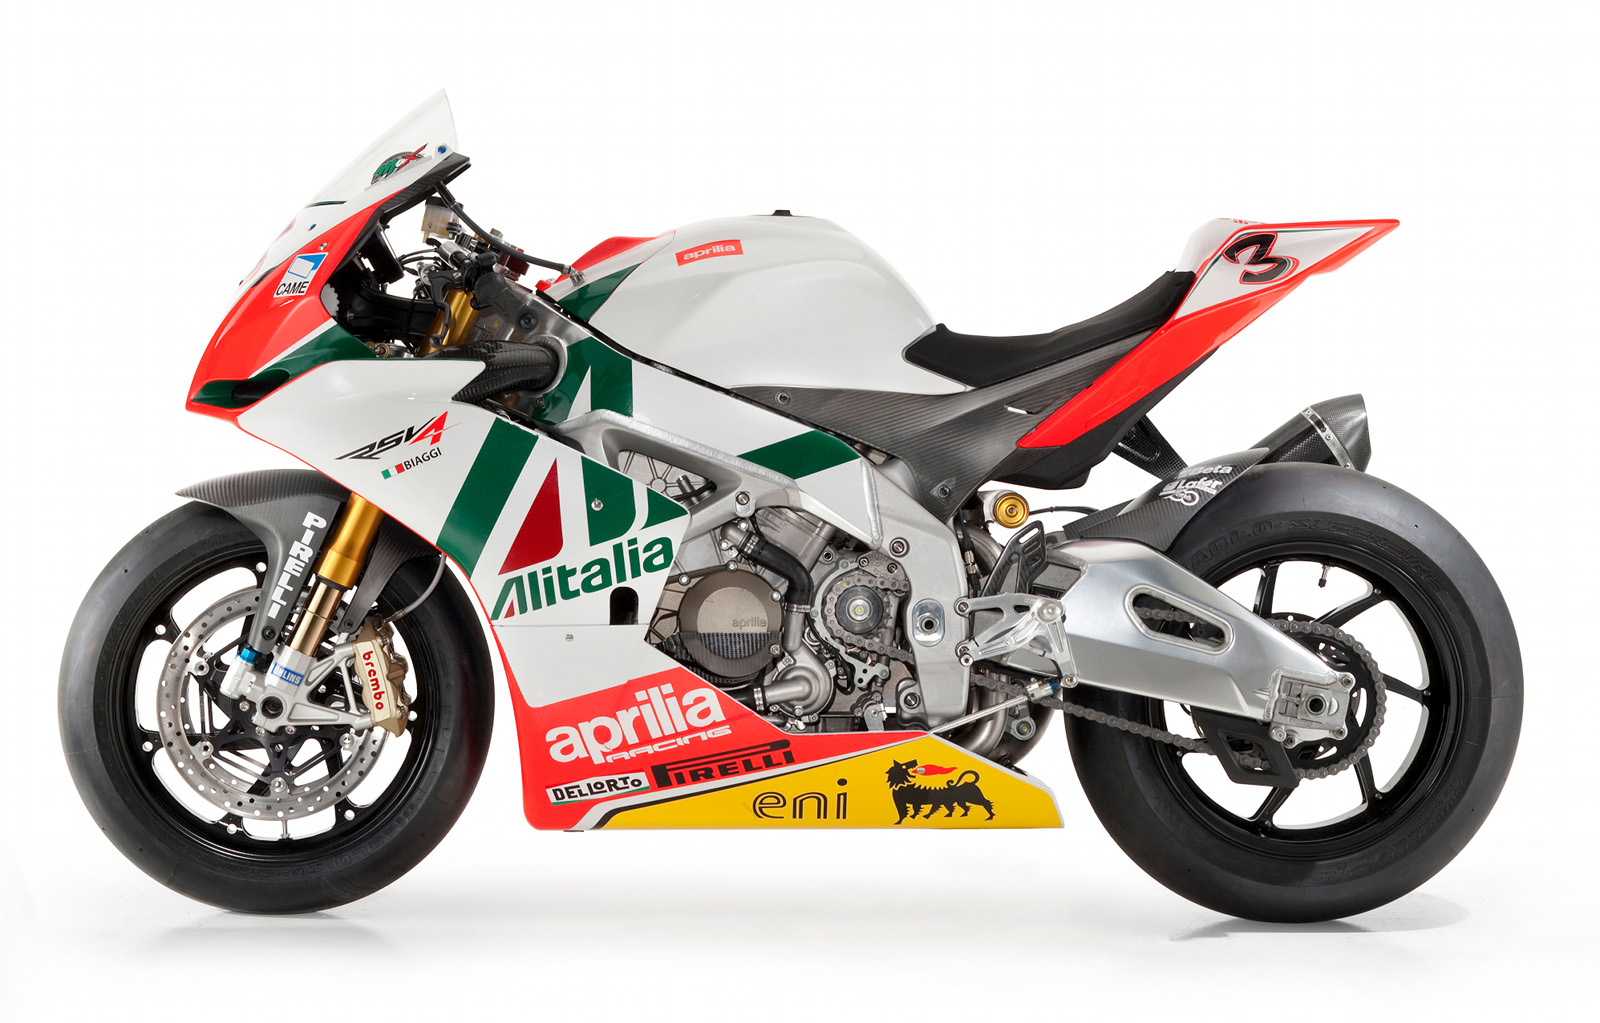 Aprilia RSV4 Max Biaggi Replica Superbike Photo title=